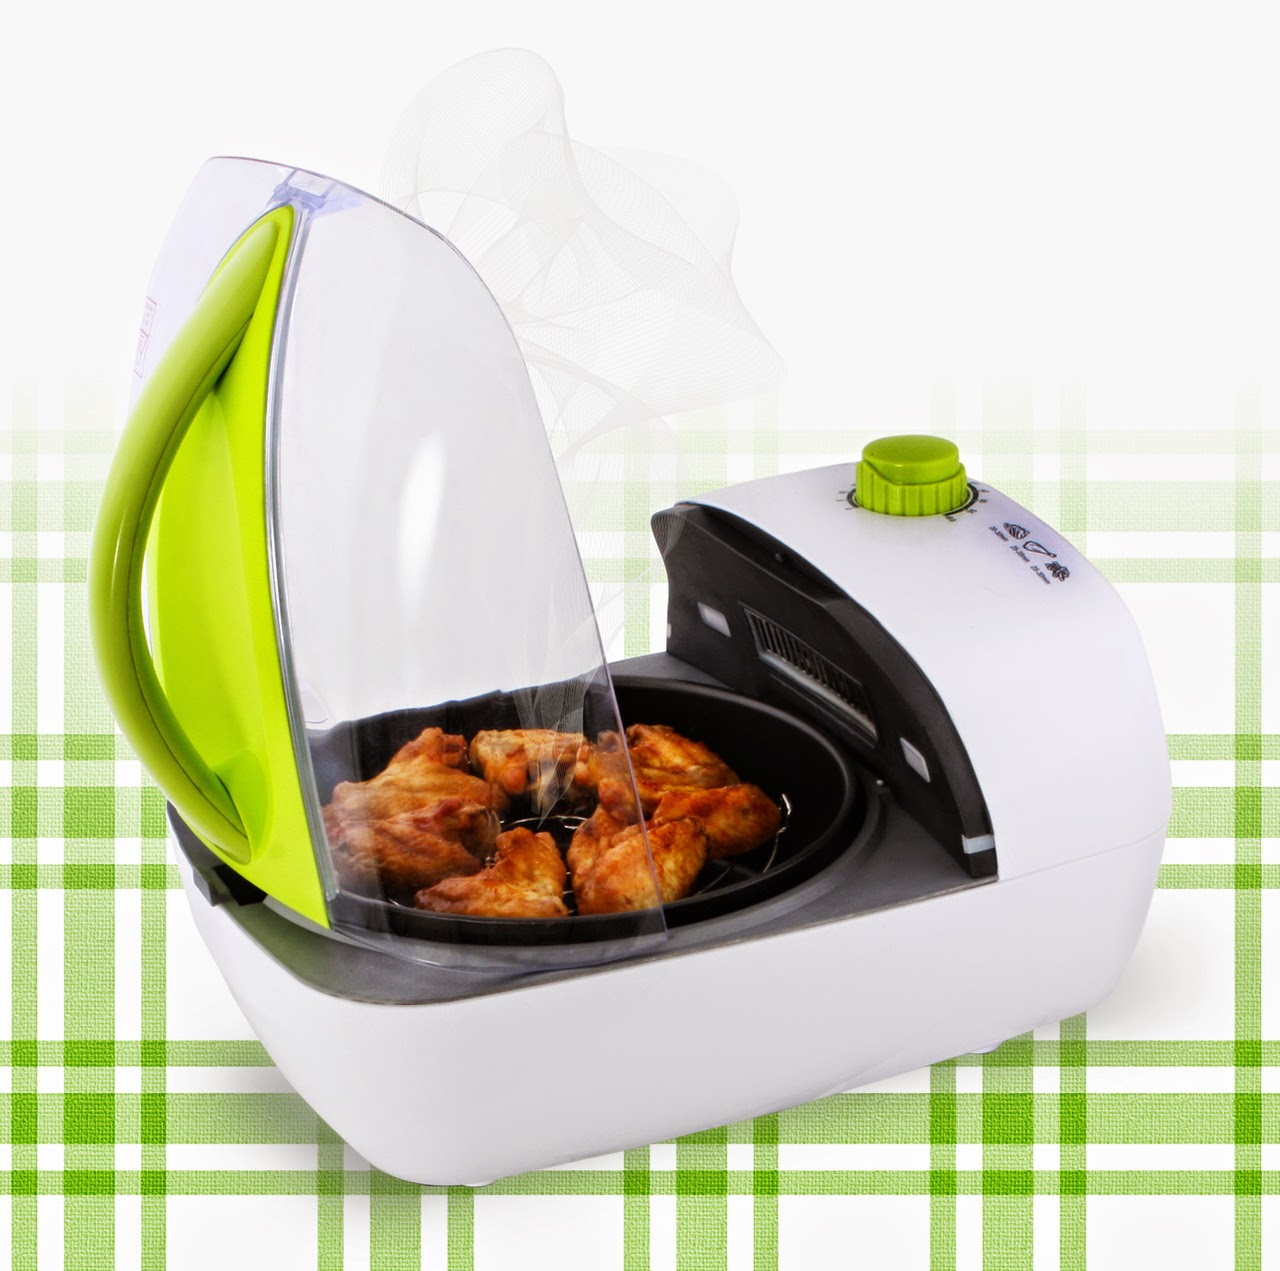 Enter to Win a Jet Fryer Valued at $150 in this great giveaway before it ends on 9/15